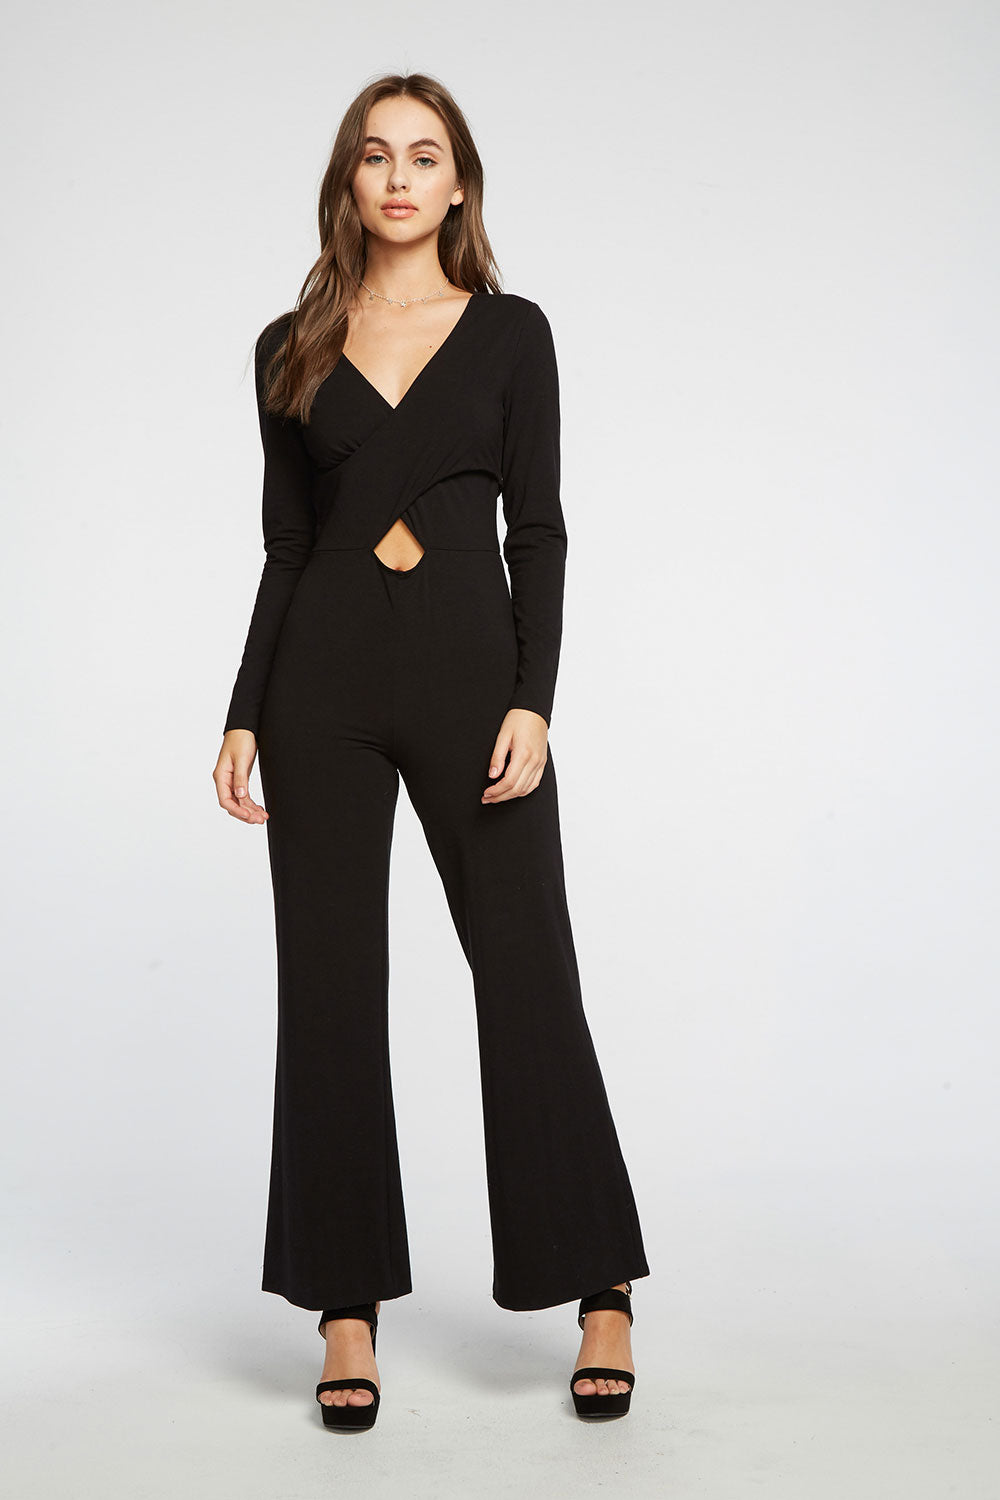 Quadrablend Vented Crossover Wide Leg Jumpsuit WOMENS chaserbrand4.myshopify.com